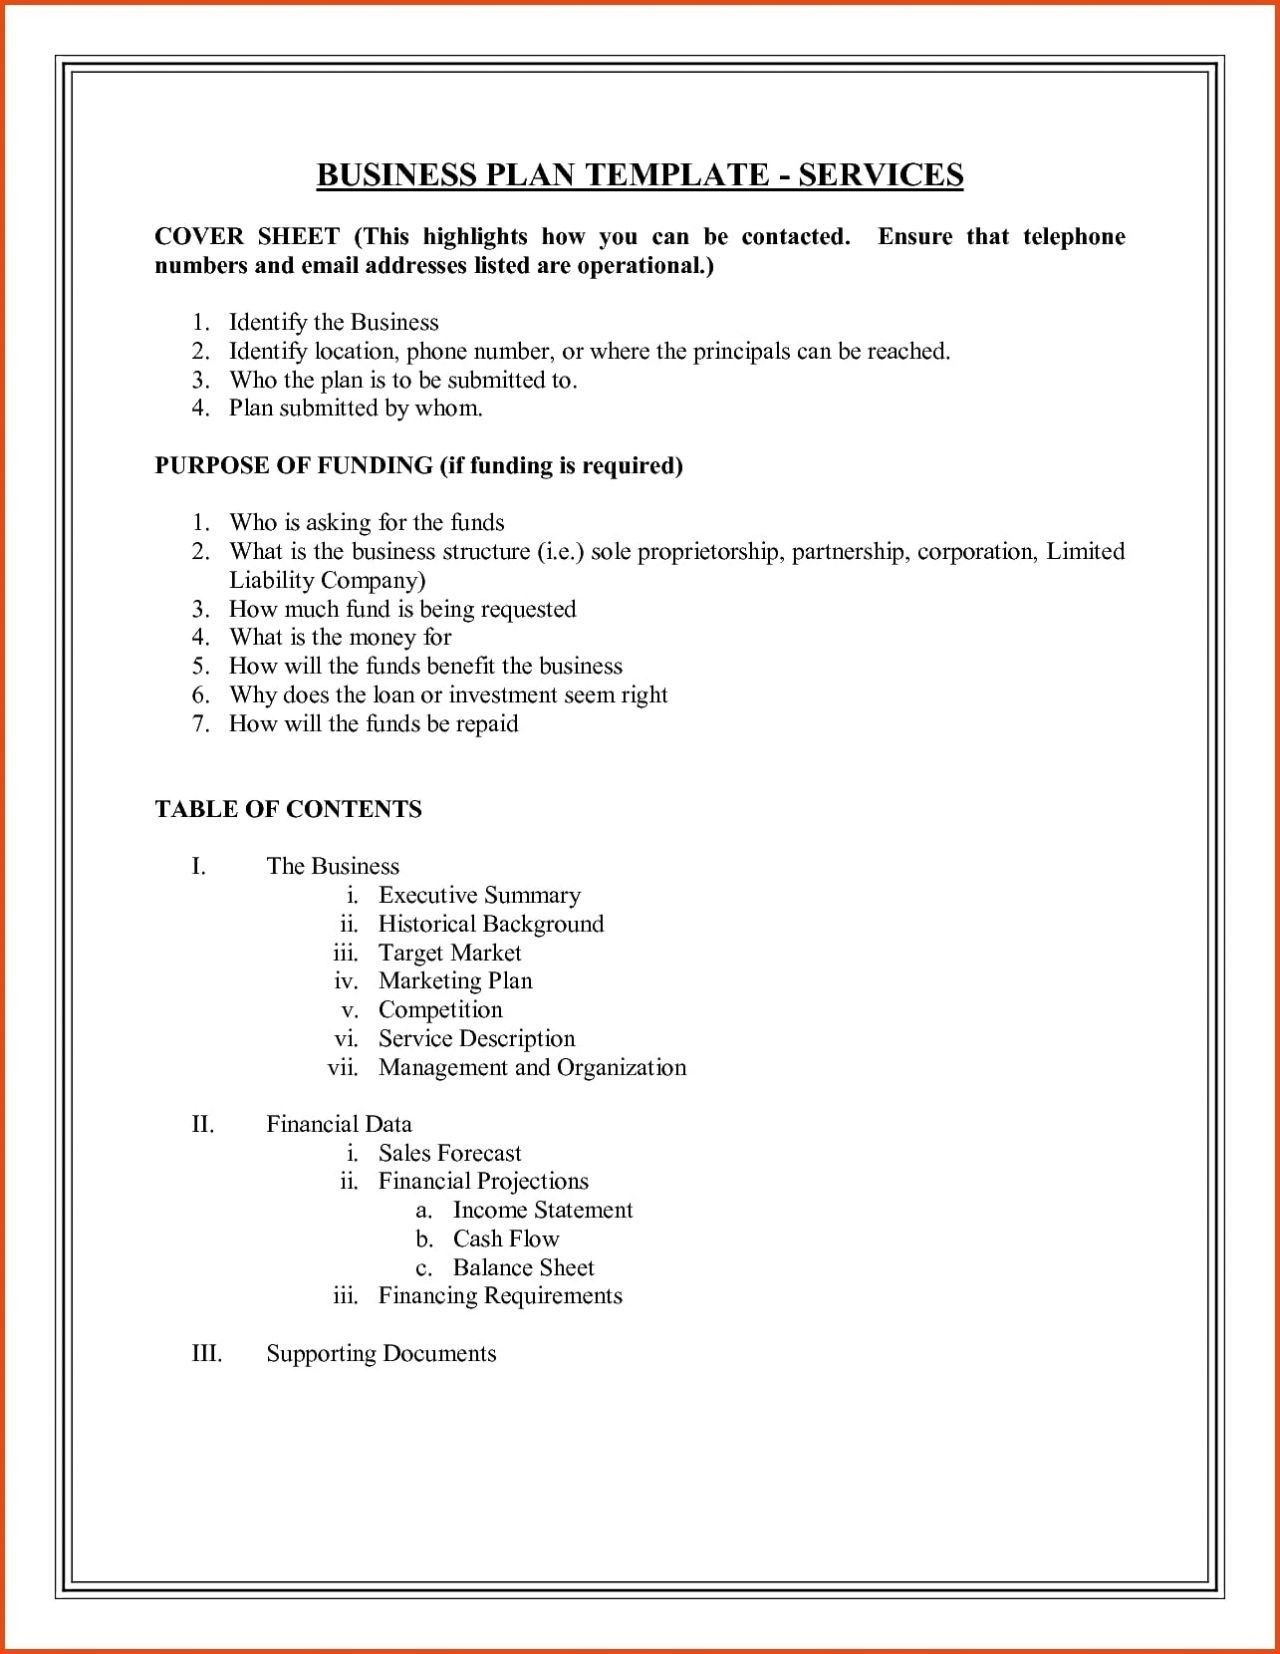 Download New sole Proprietorship Business Plan Template